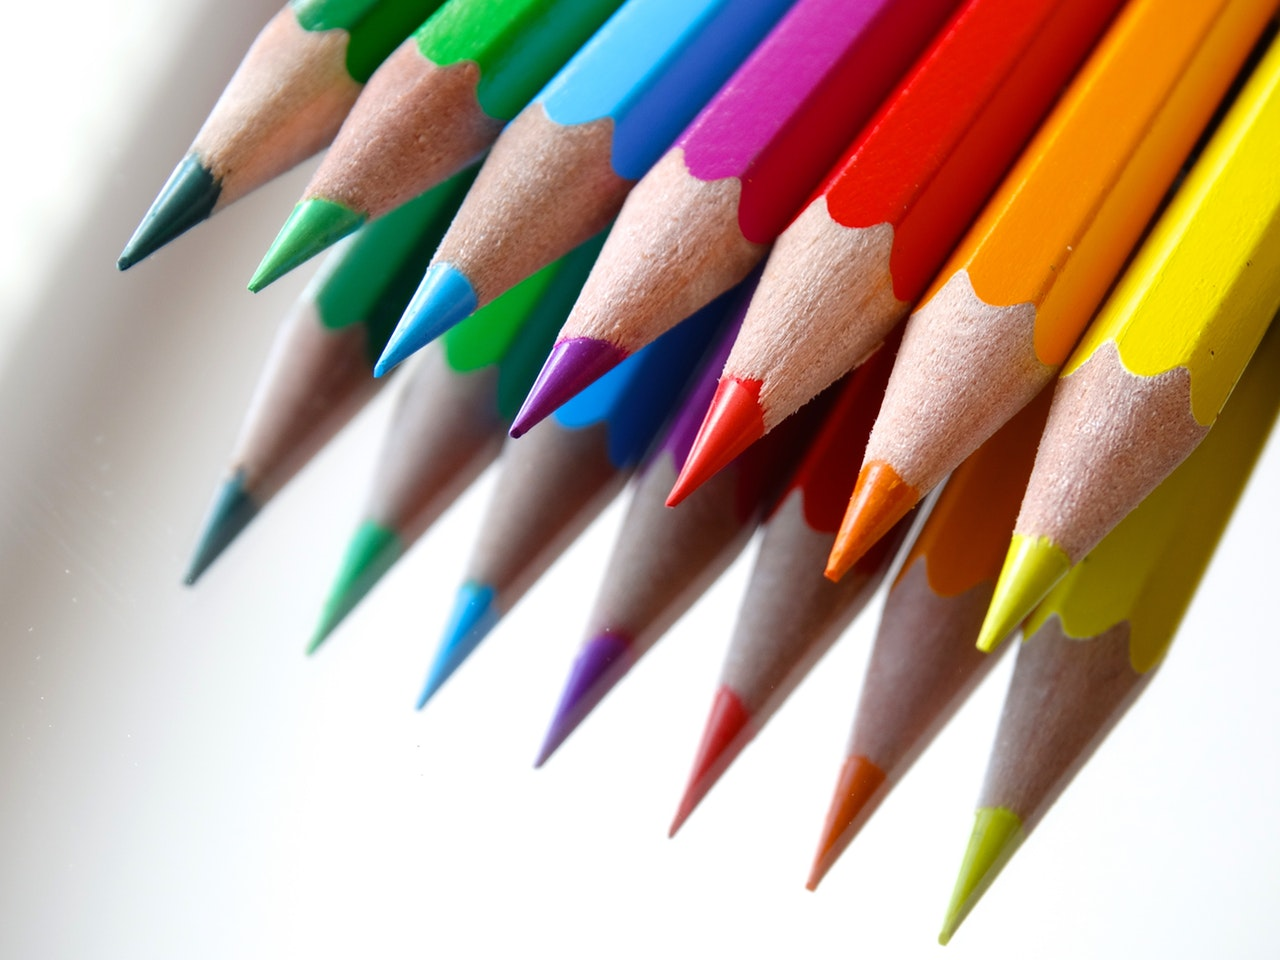 Back to school marketing with colored pencils.